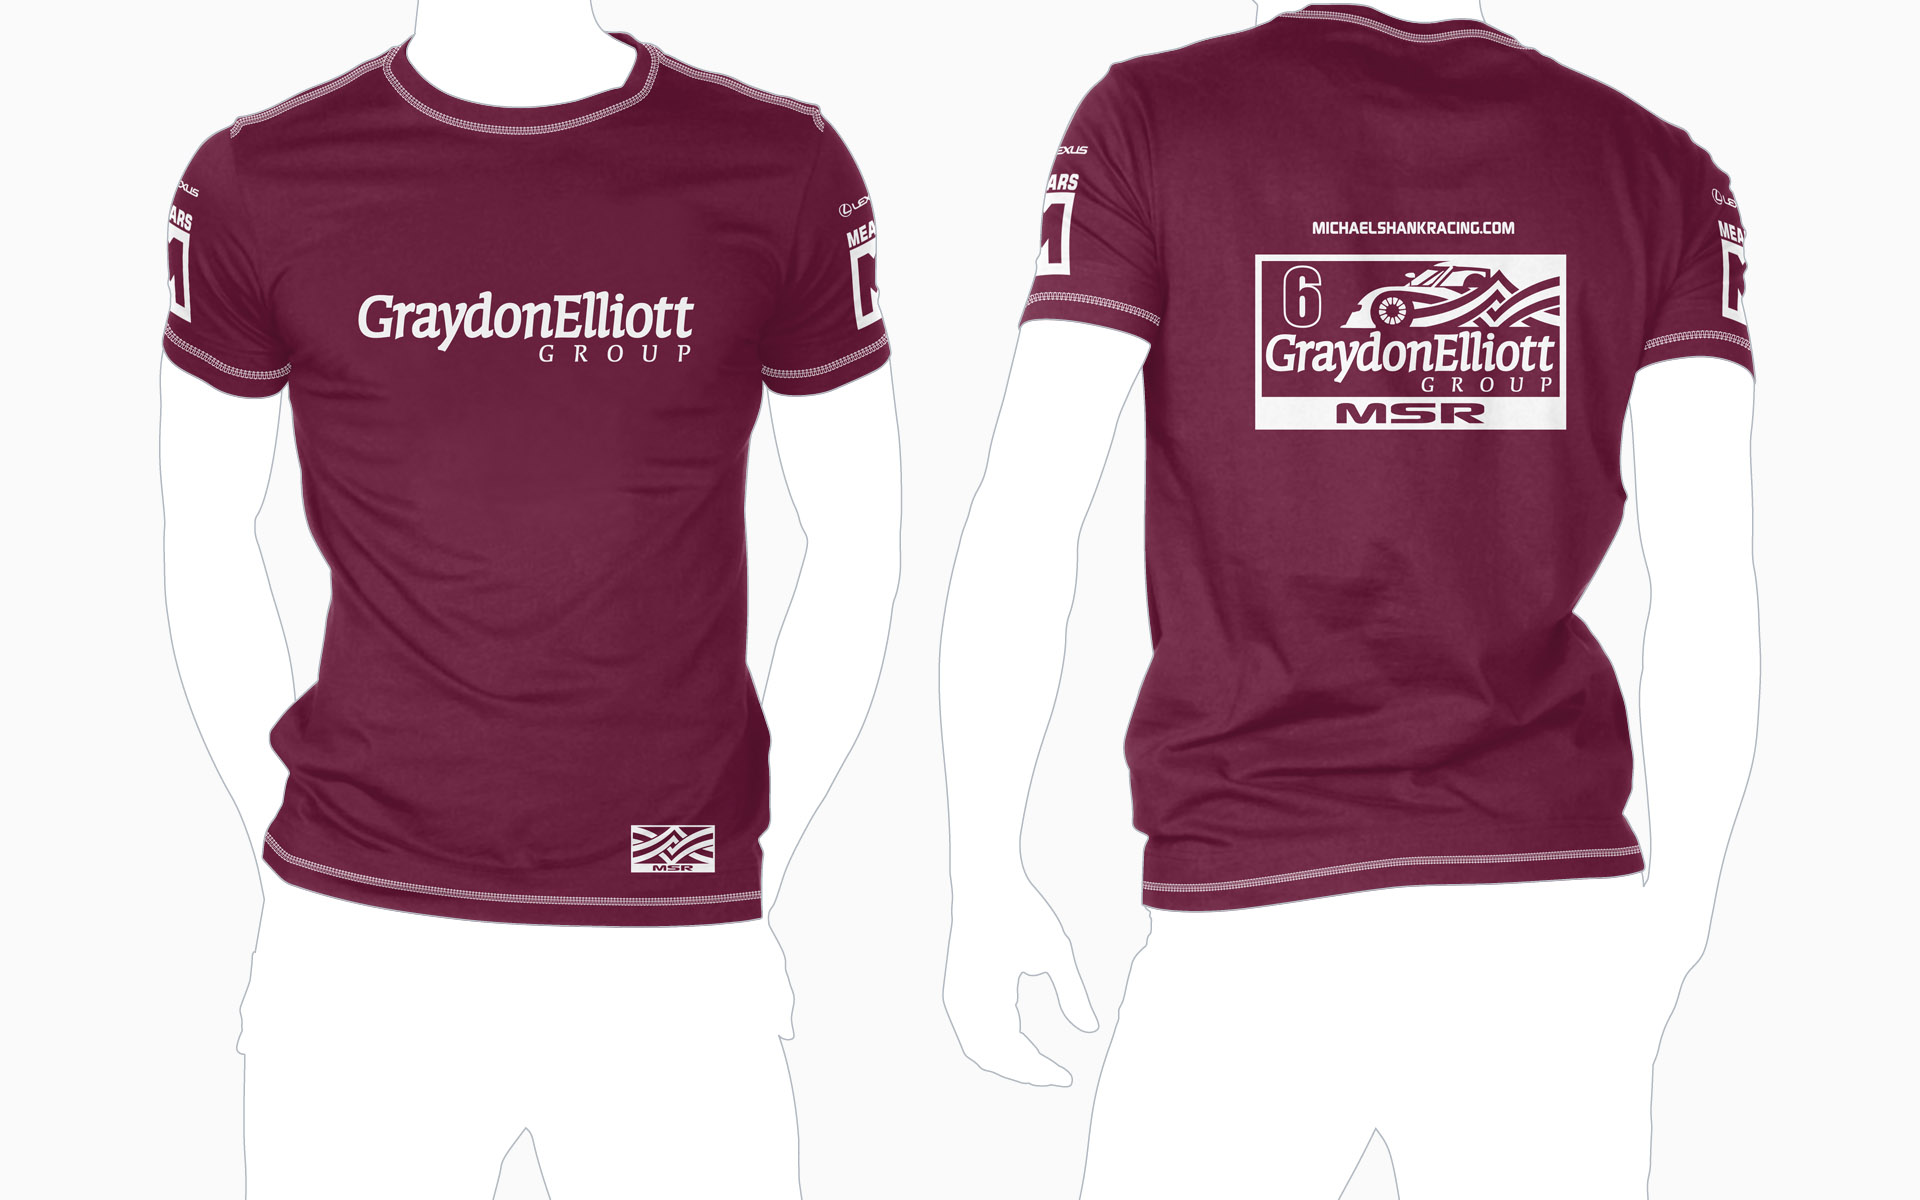 Michael Shank Racing Graydon Elliott T-Shirt